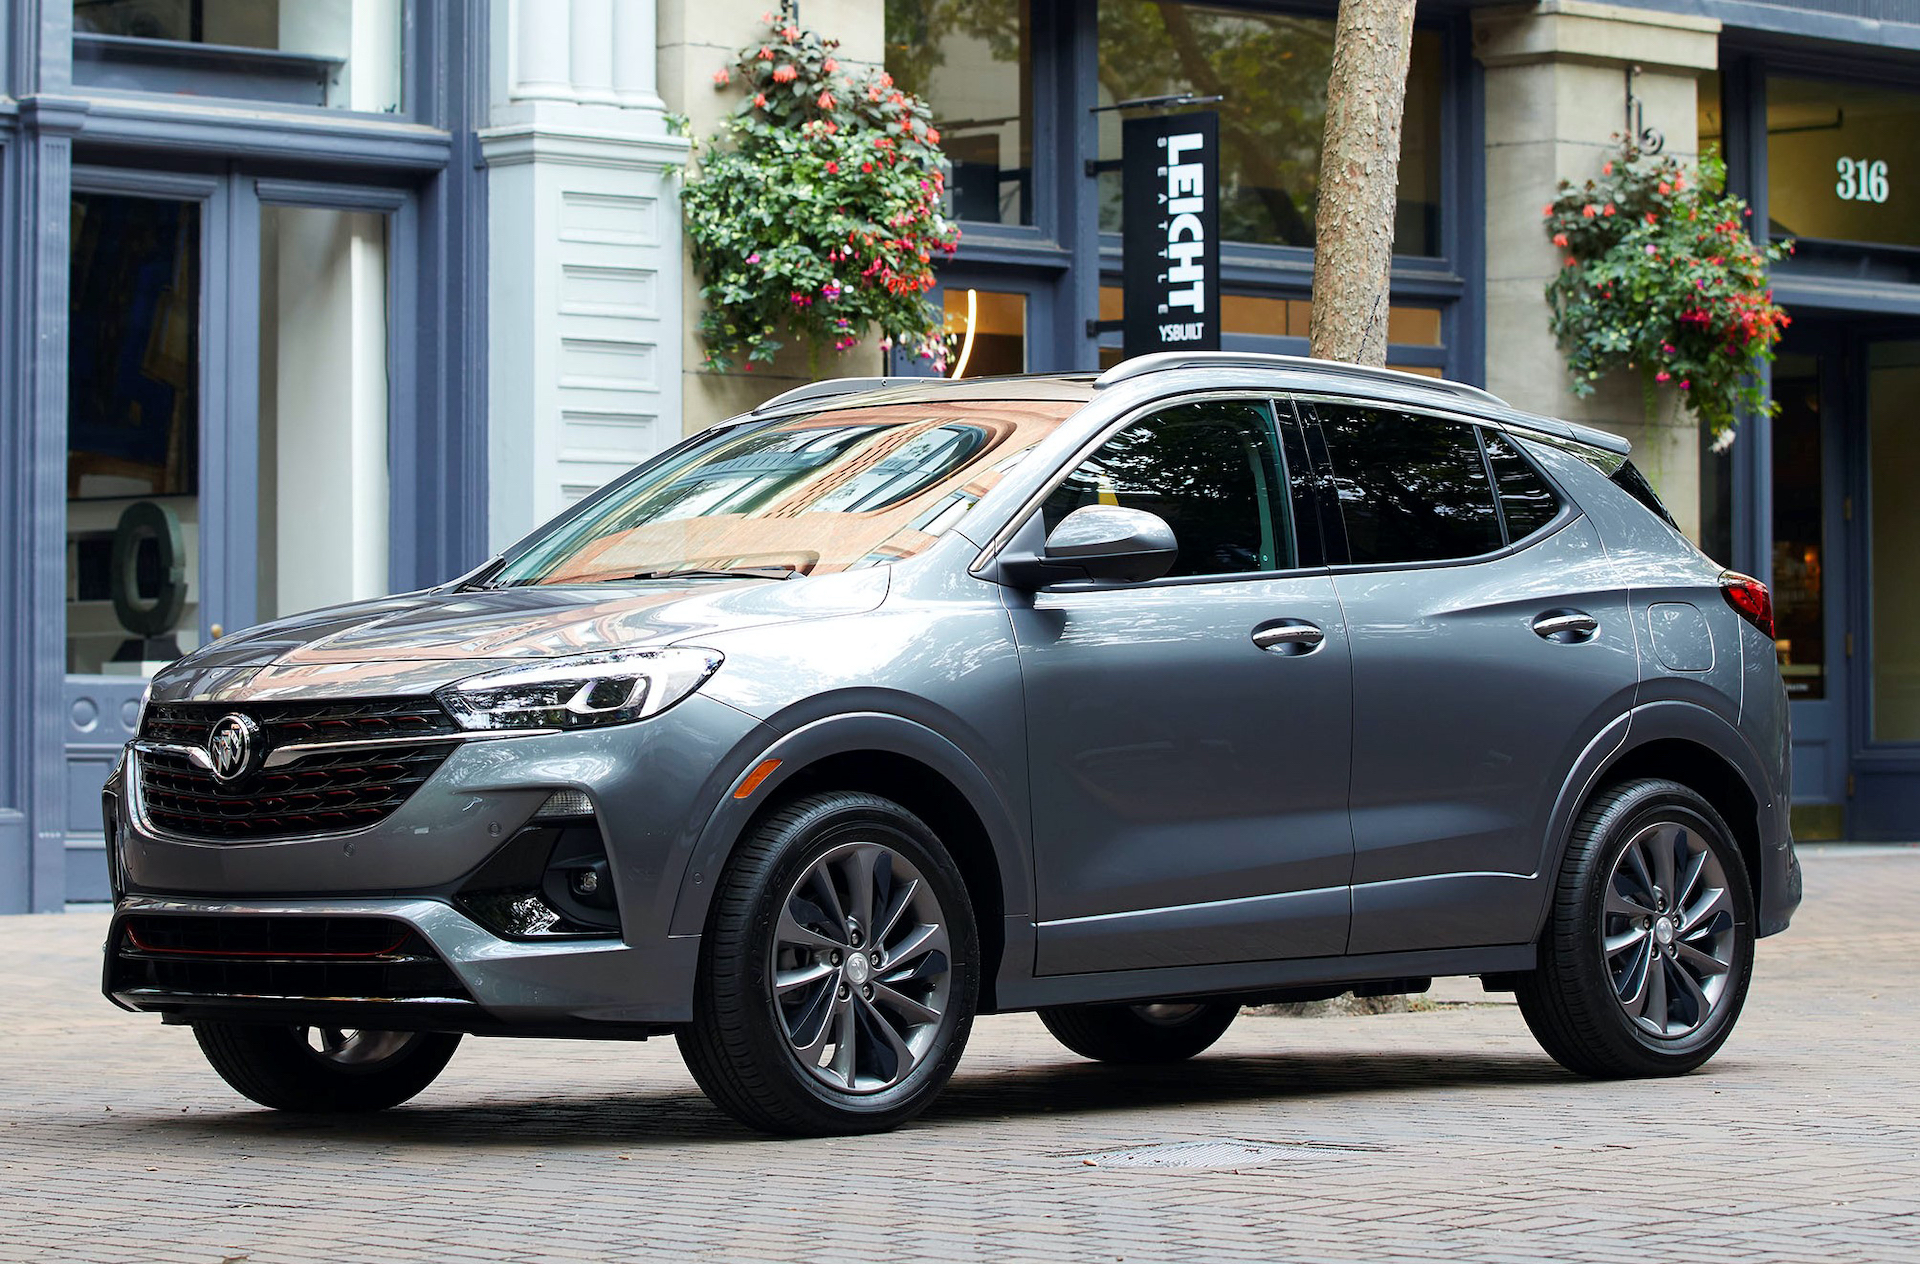 2021 Buick Encore Gx Review, New York Auto Show Canceled 2022 Buick Encore Transmission, Tire Size, Test Drive